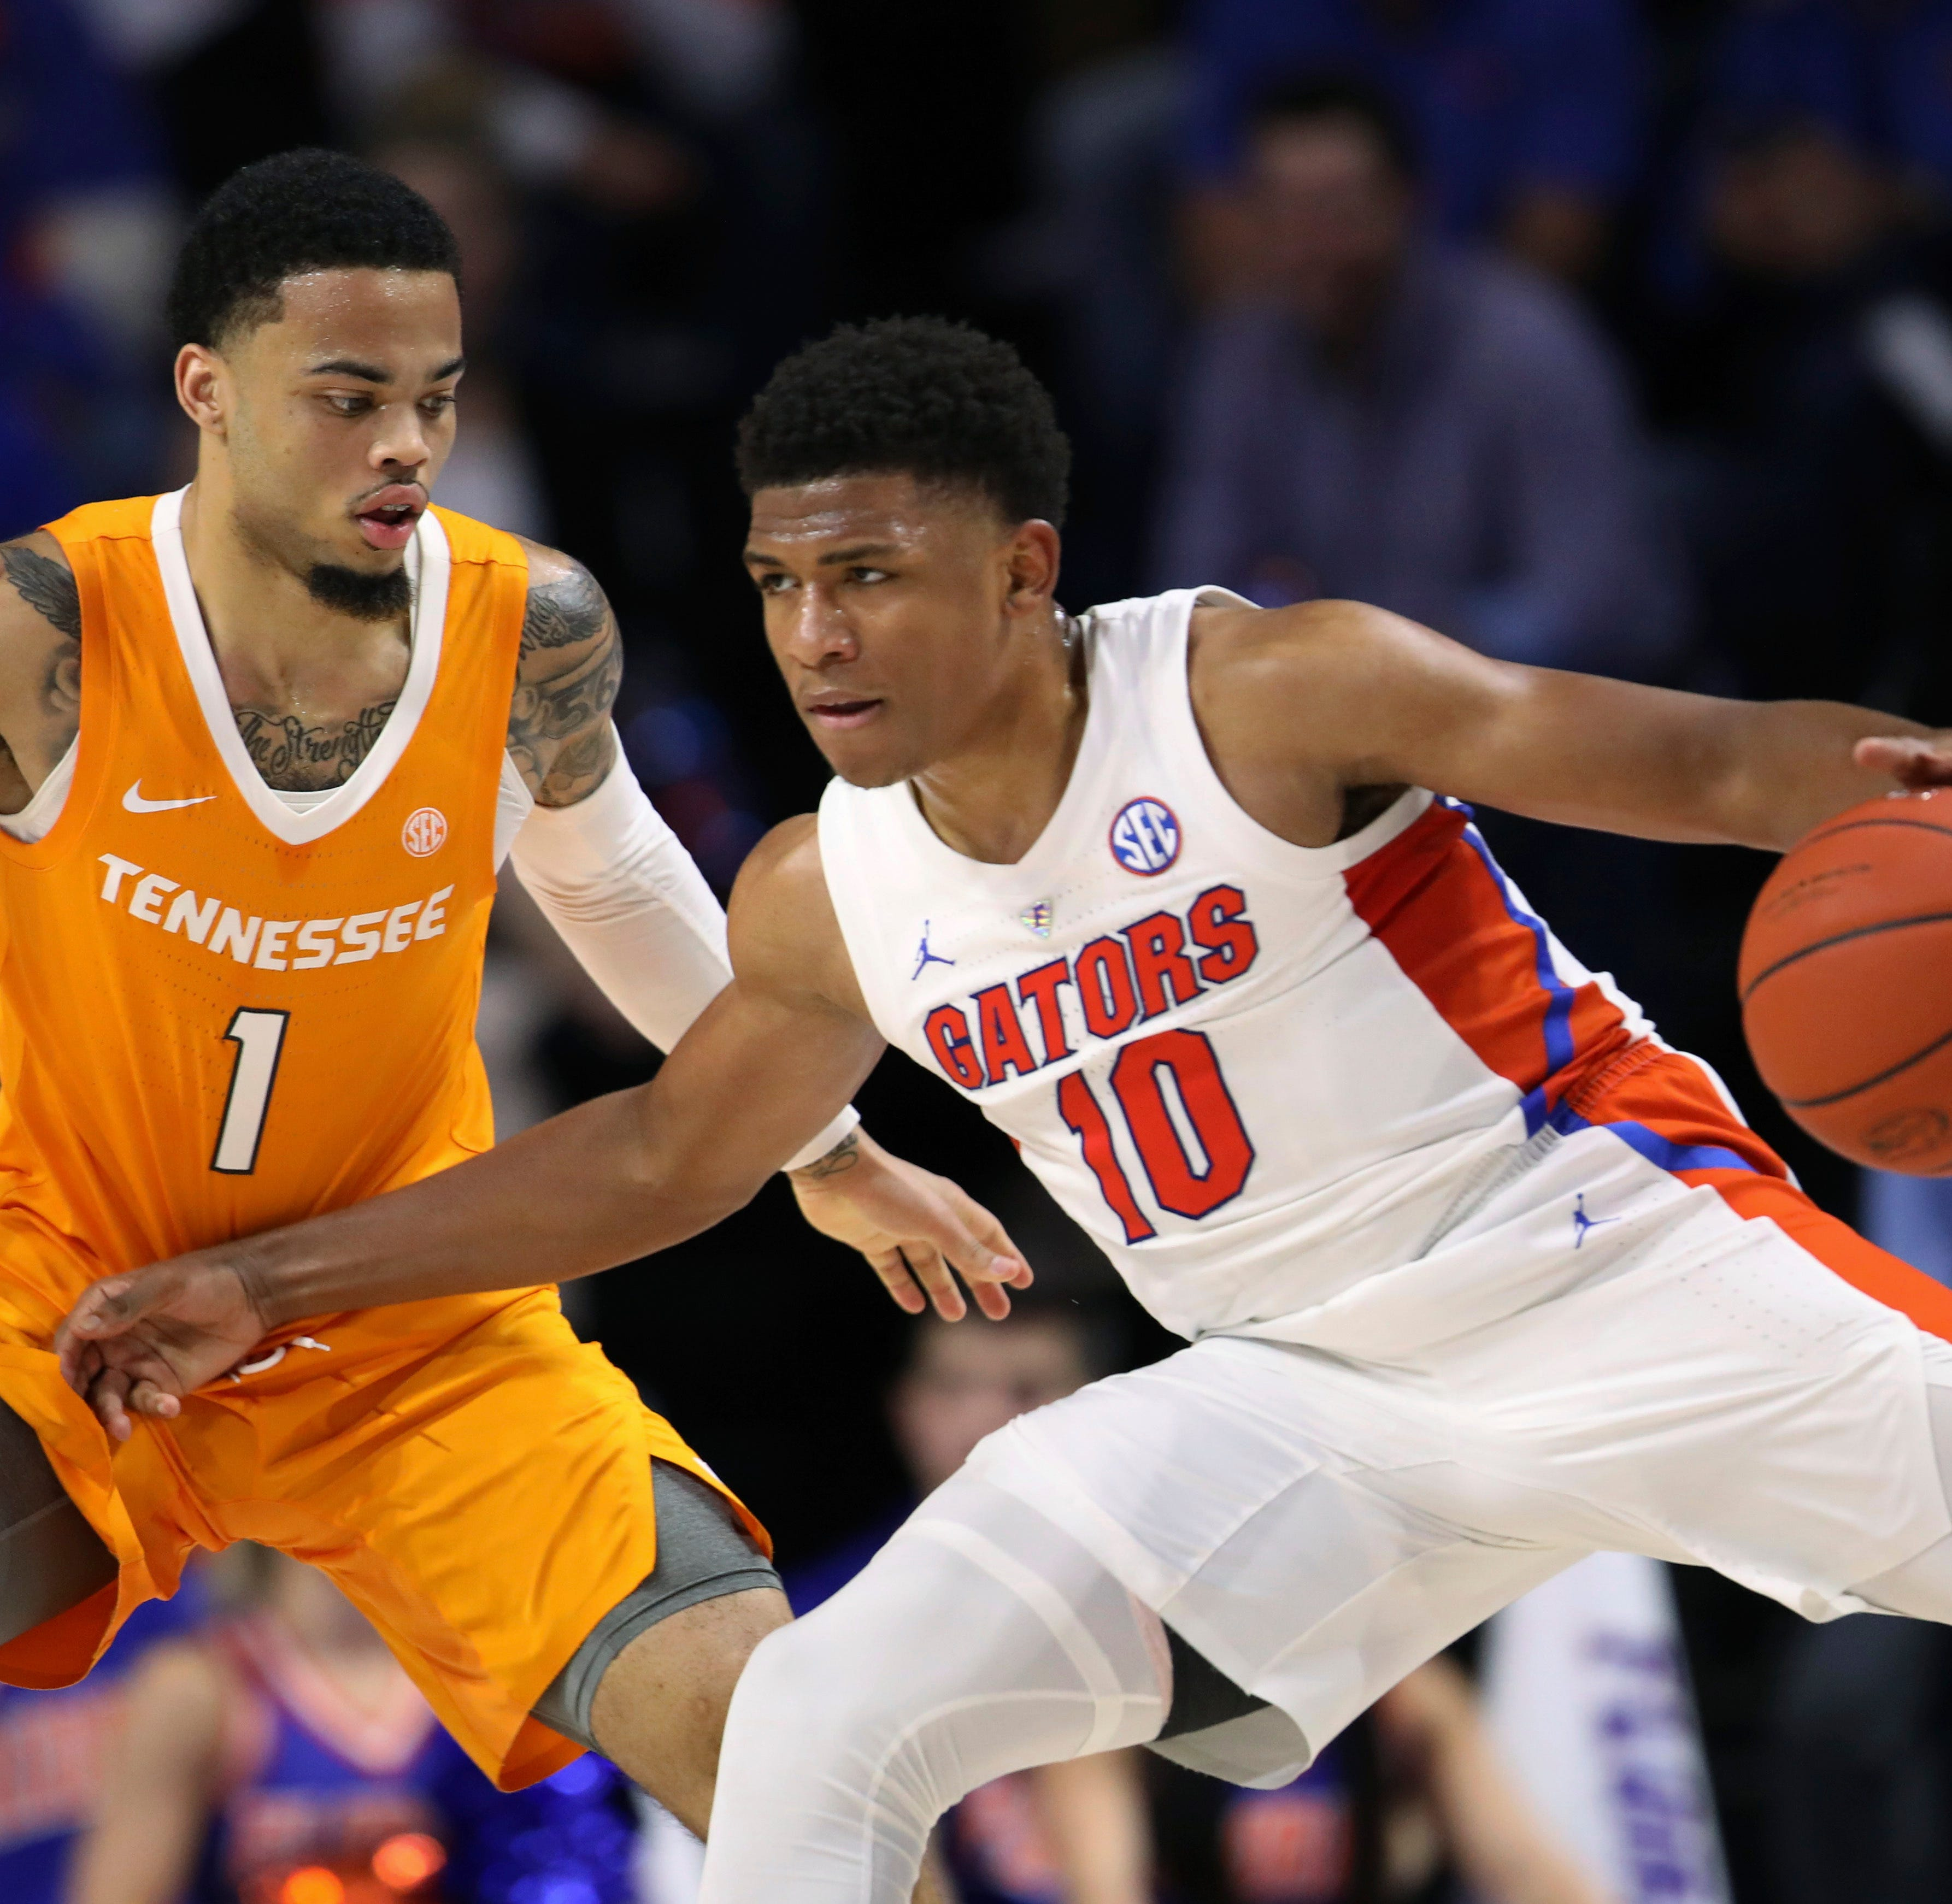 UT Vols basketball returning to deadly late-game lineup with Lamonte Turner